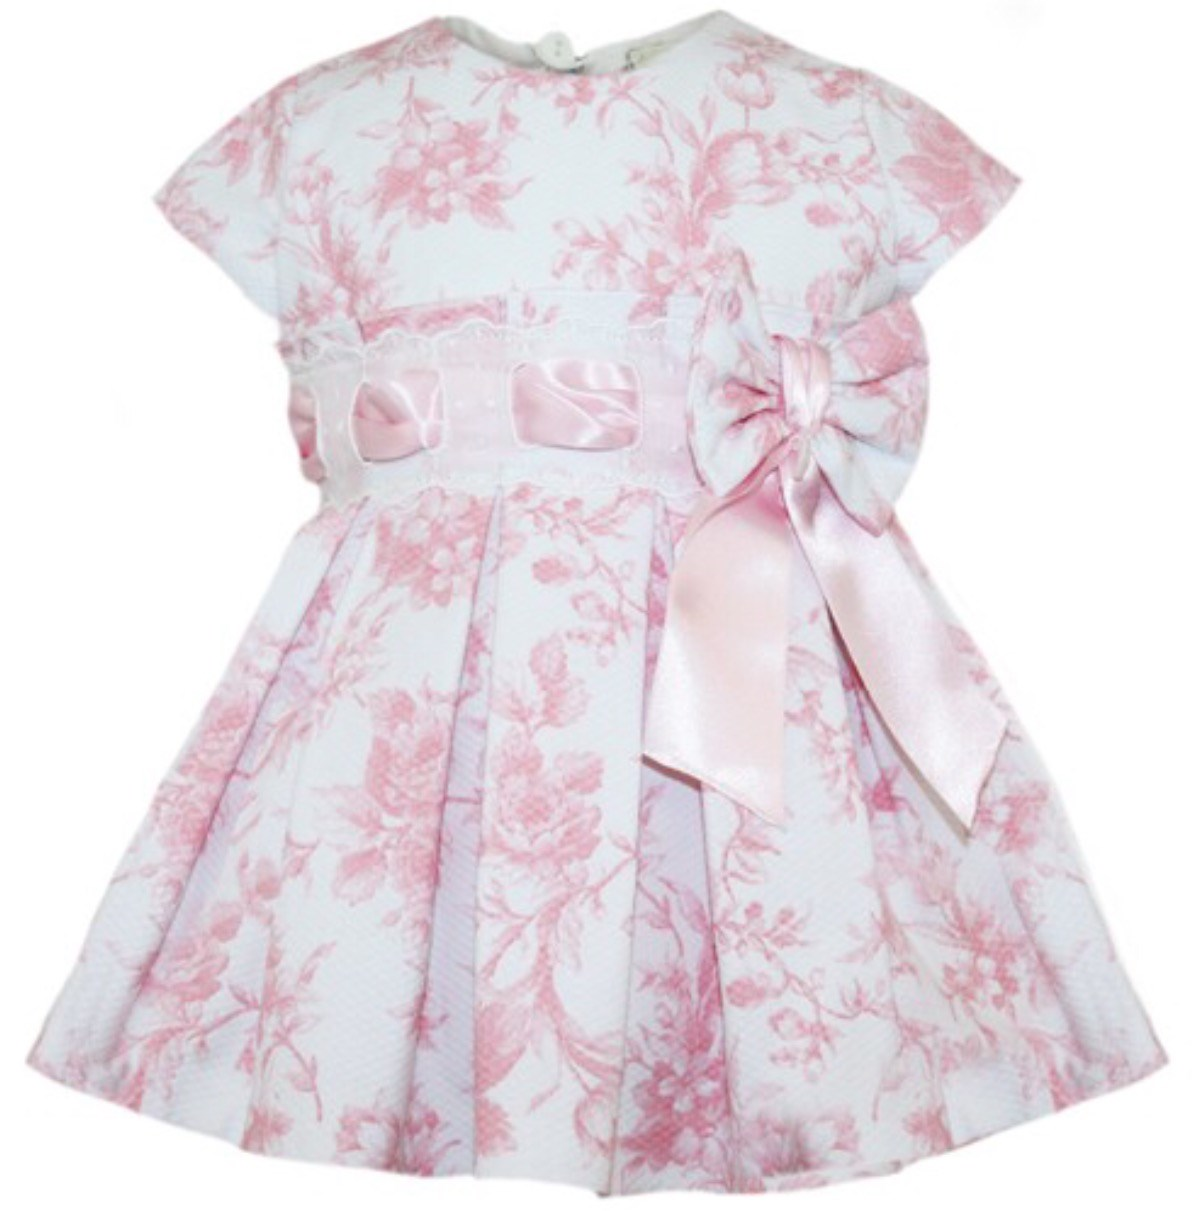 Abella pink and white dress with matching pants